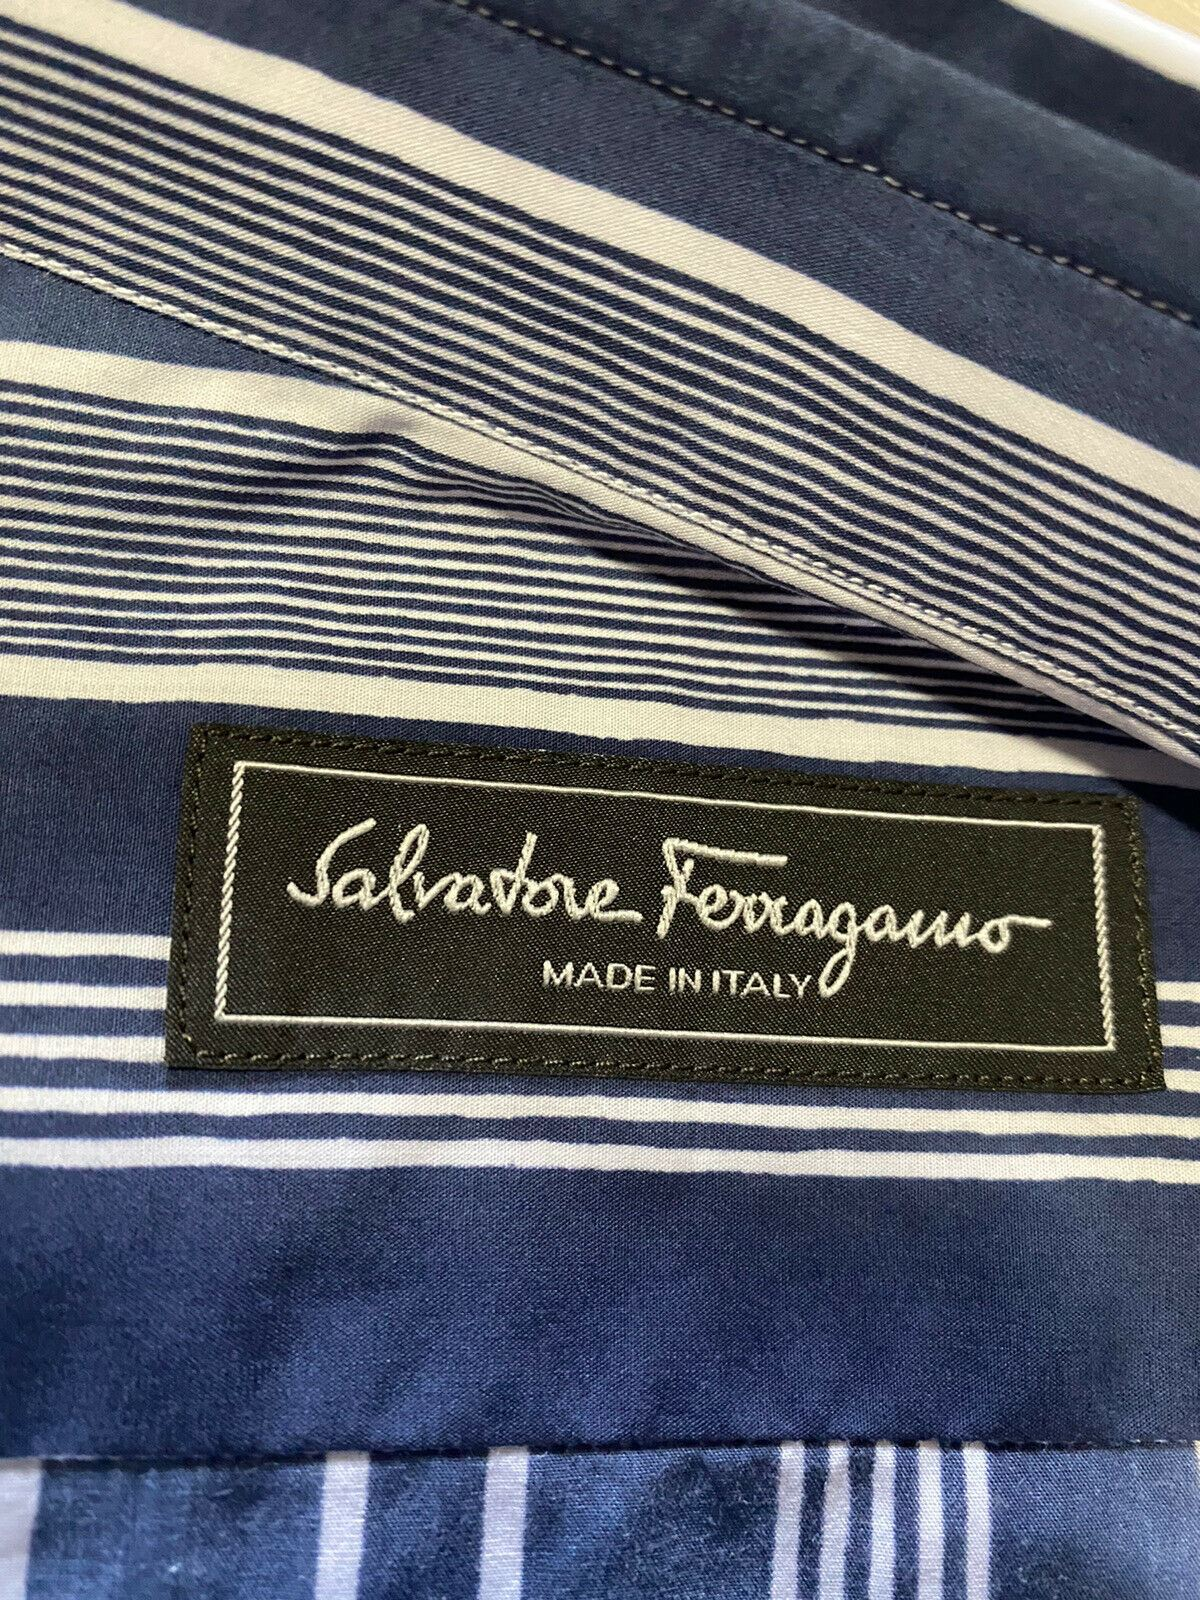 New $490 Salvatore Ferragamo Men Slim Fit Long Sleeve Shirt Blue S Italy